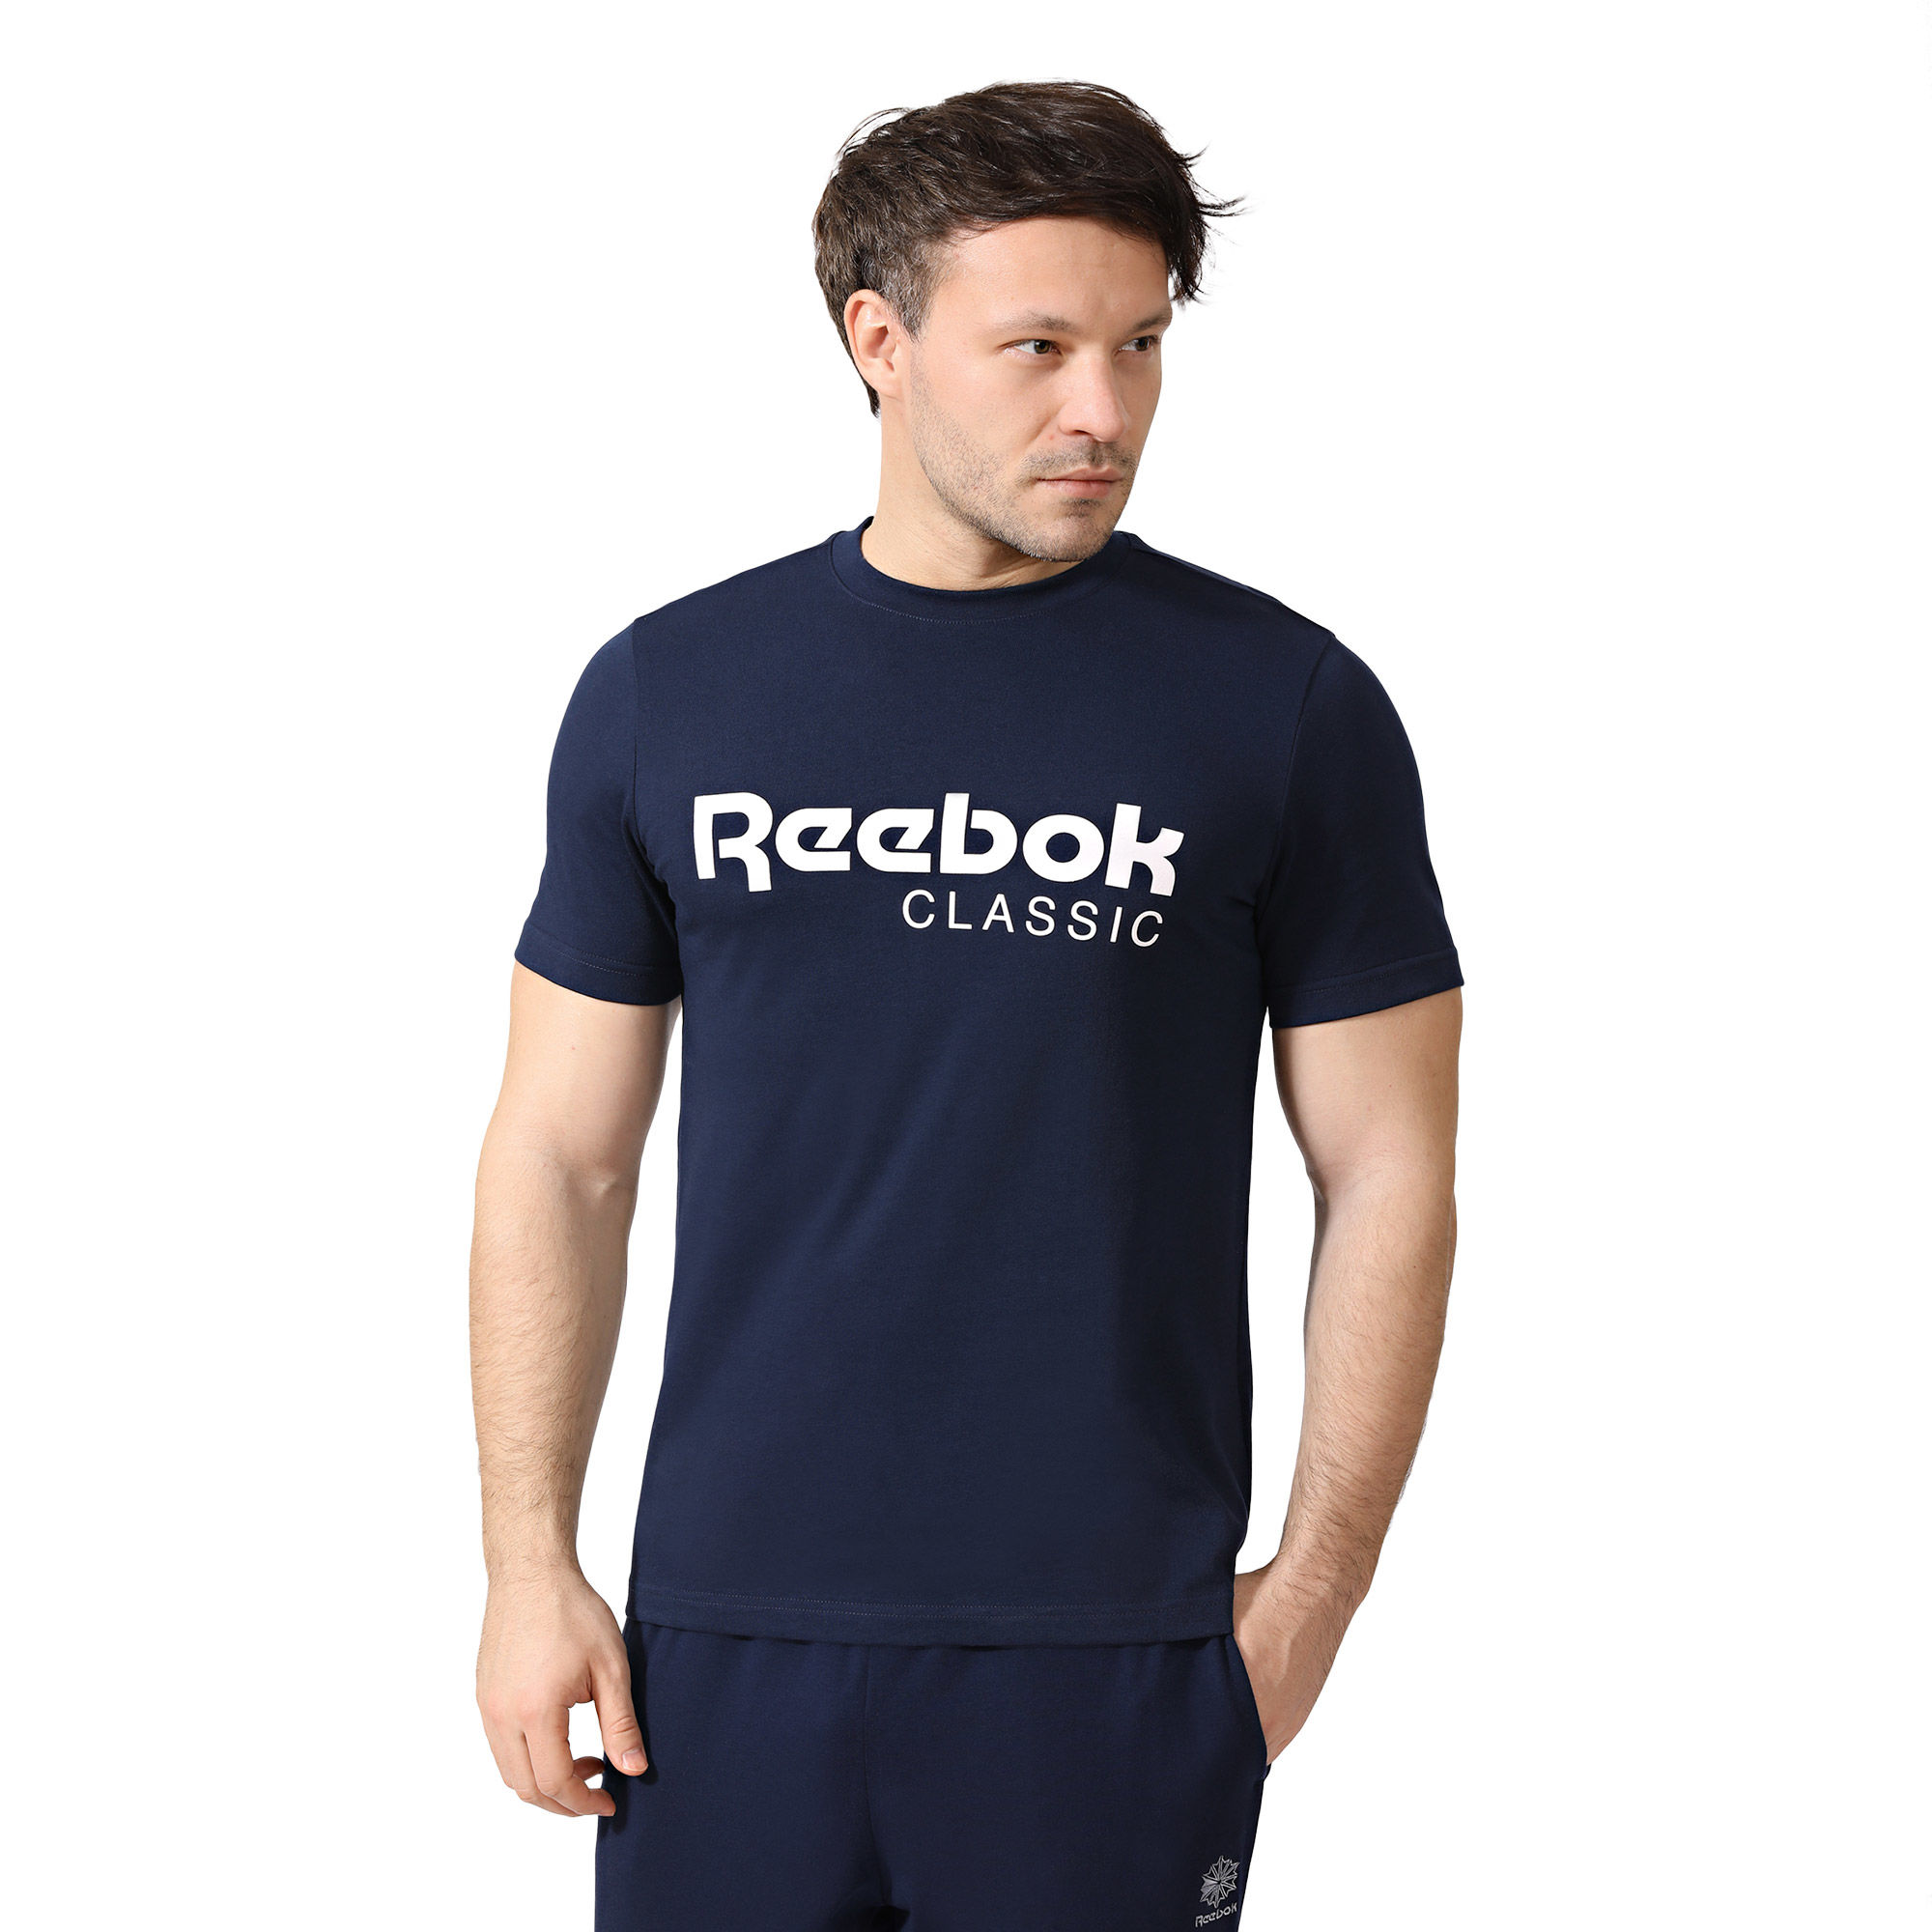 Available from 10.11 REEBOK T-shirt Reebok  CY7196 available from 10 11 asics running t shirt 141240 1107